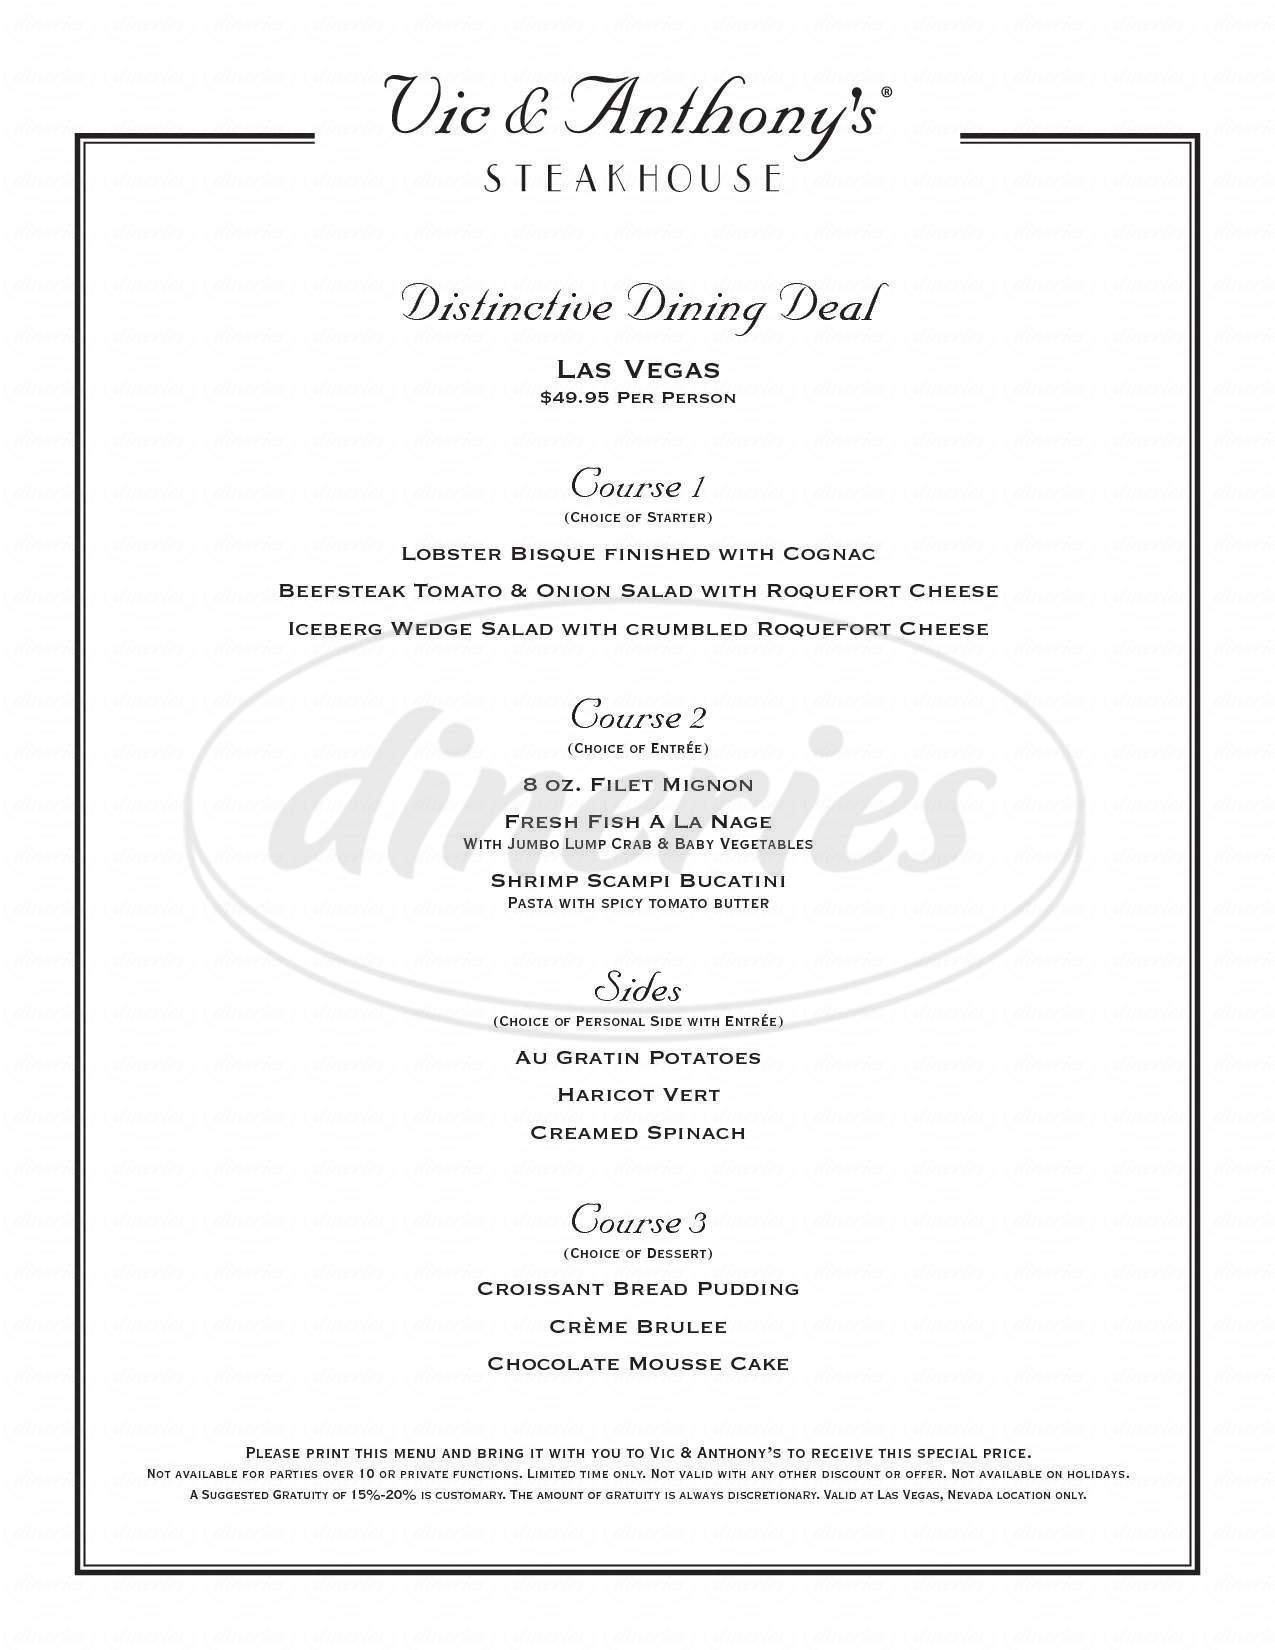 menu for Vic & Anthony's Steakhouse